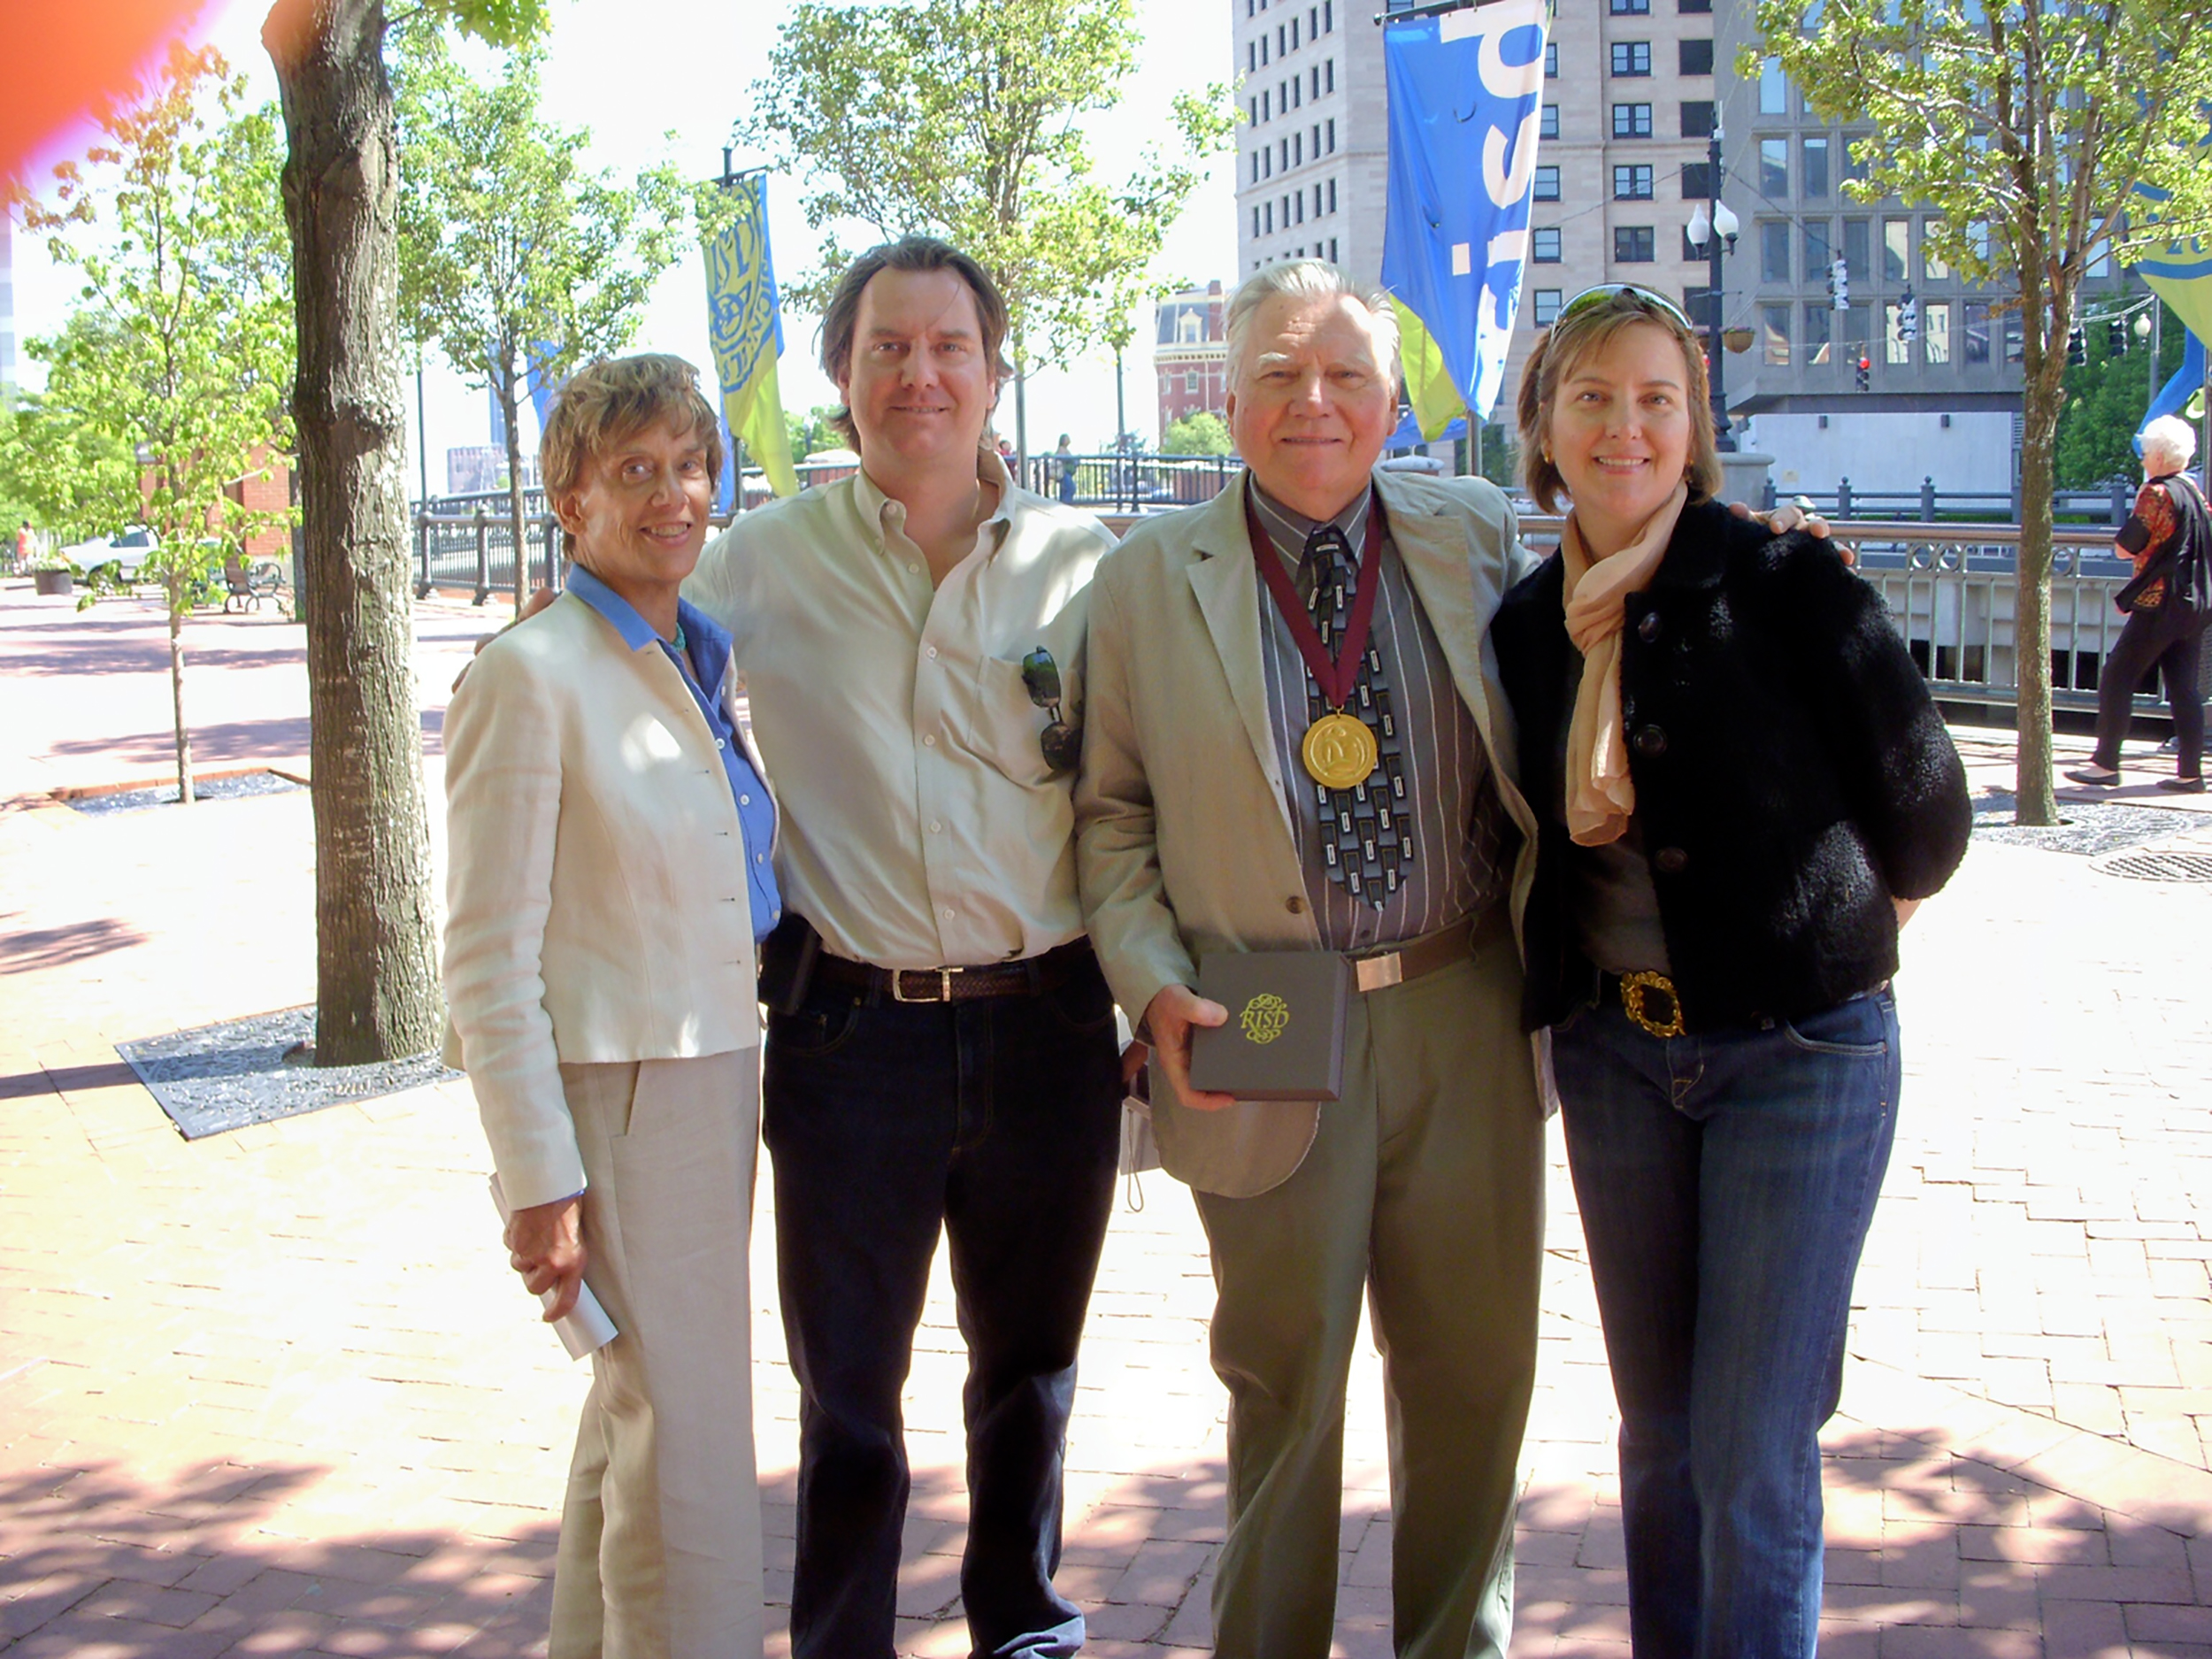 Lyn, Aaron, JU and Chryssa outside the Rhode Island School of Design's auditorium after JU was awarded RISD's Gold Sophia Medallion honoring him for his 34 years of teaching and service to the college. May 29, 2008